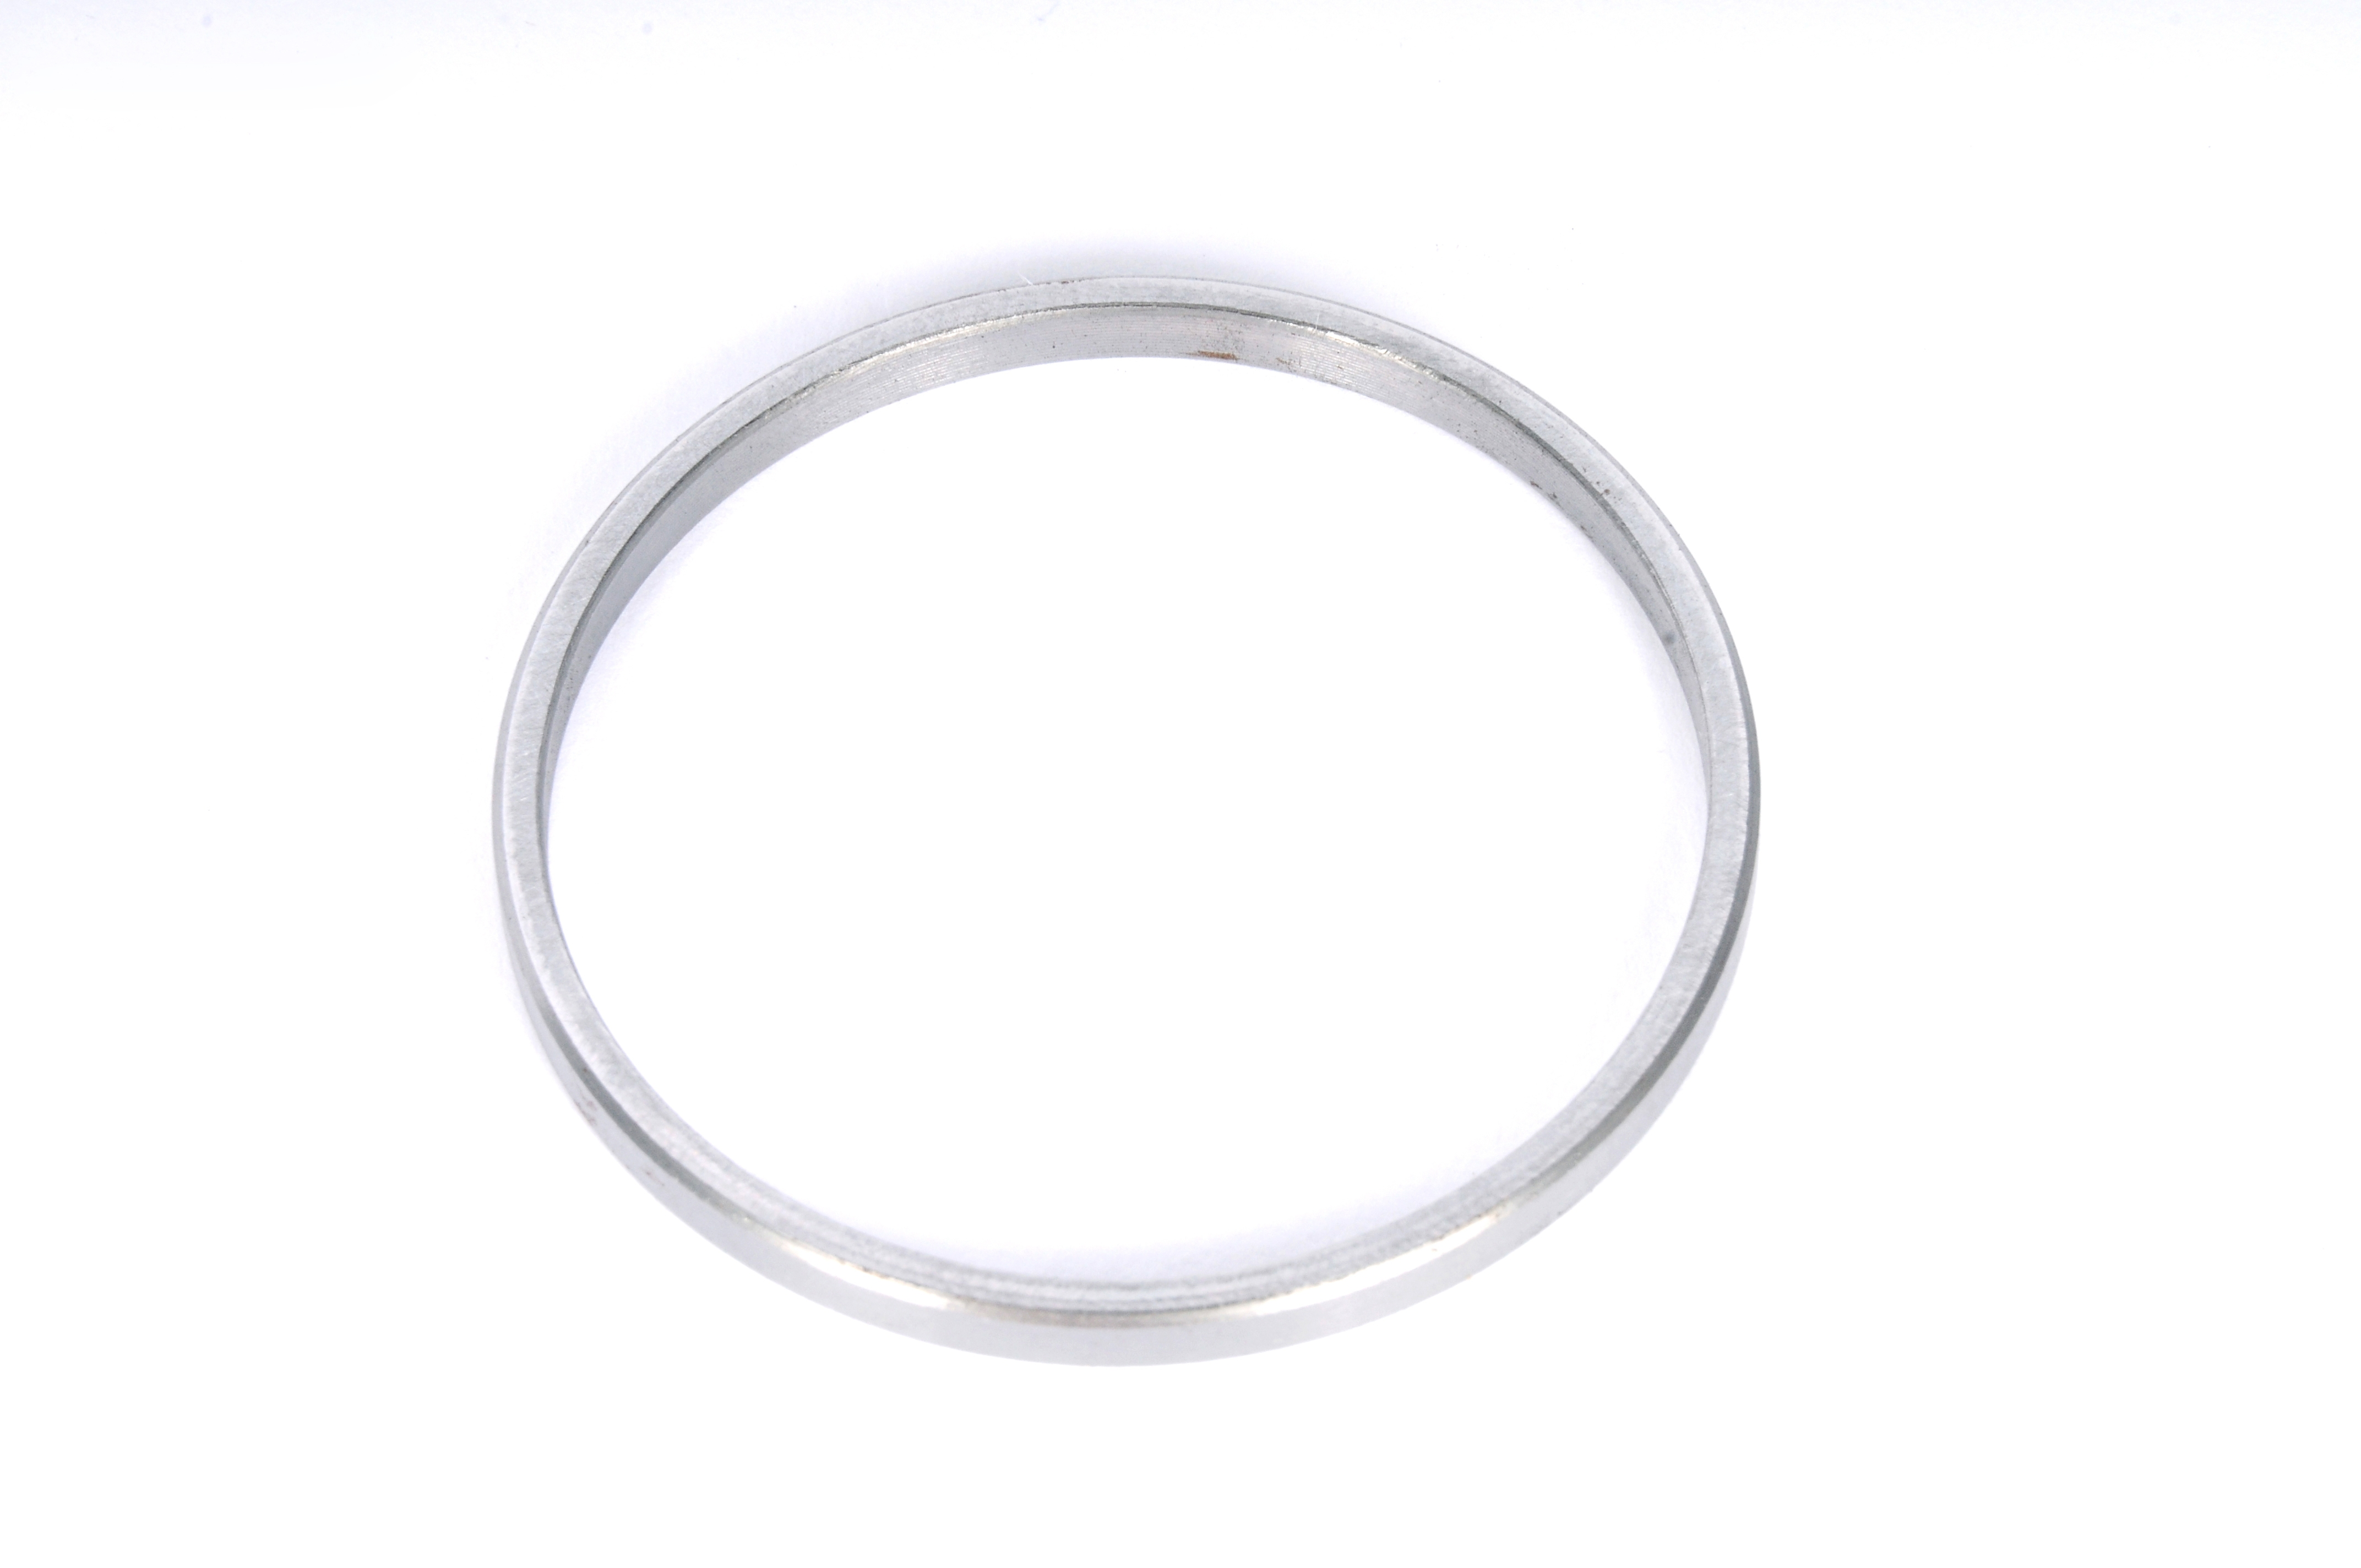 ACDELCO GM ORIGINAL EQUIPMENT - Manual Transmission Gear Synchro Ring Retainer - DCB 89059975